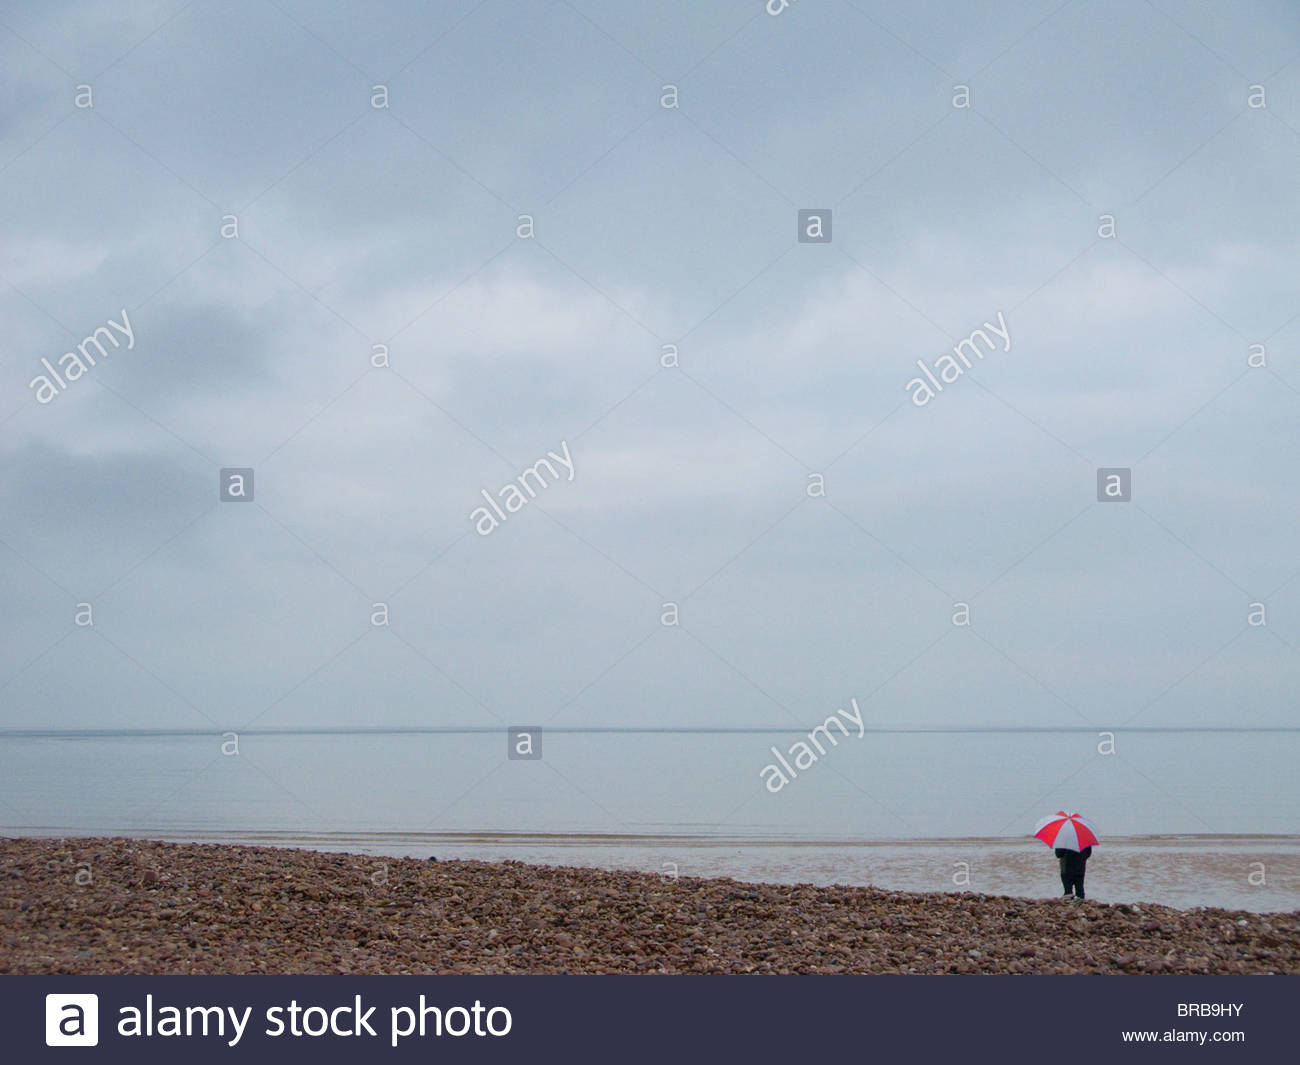 Woman standing with umbrella on tranquil rocky beach looking at ocean - Stock Image